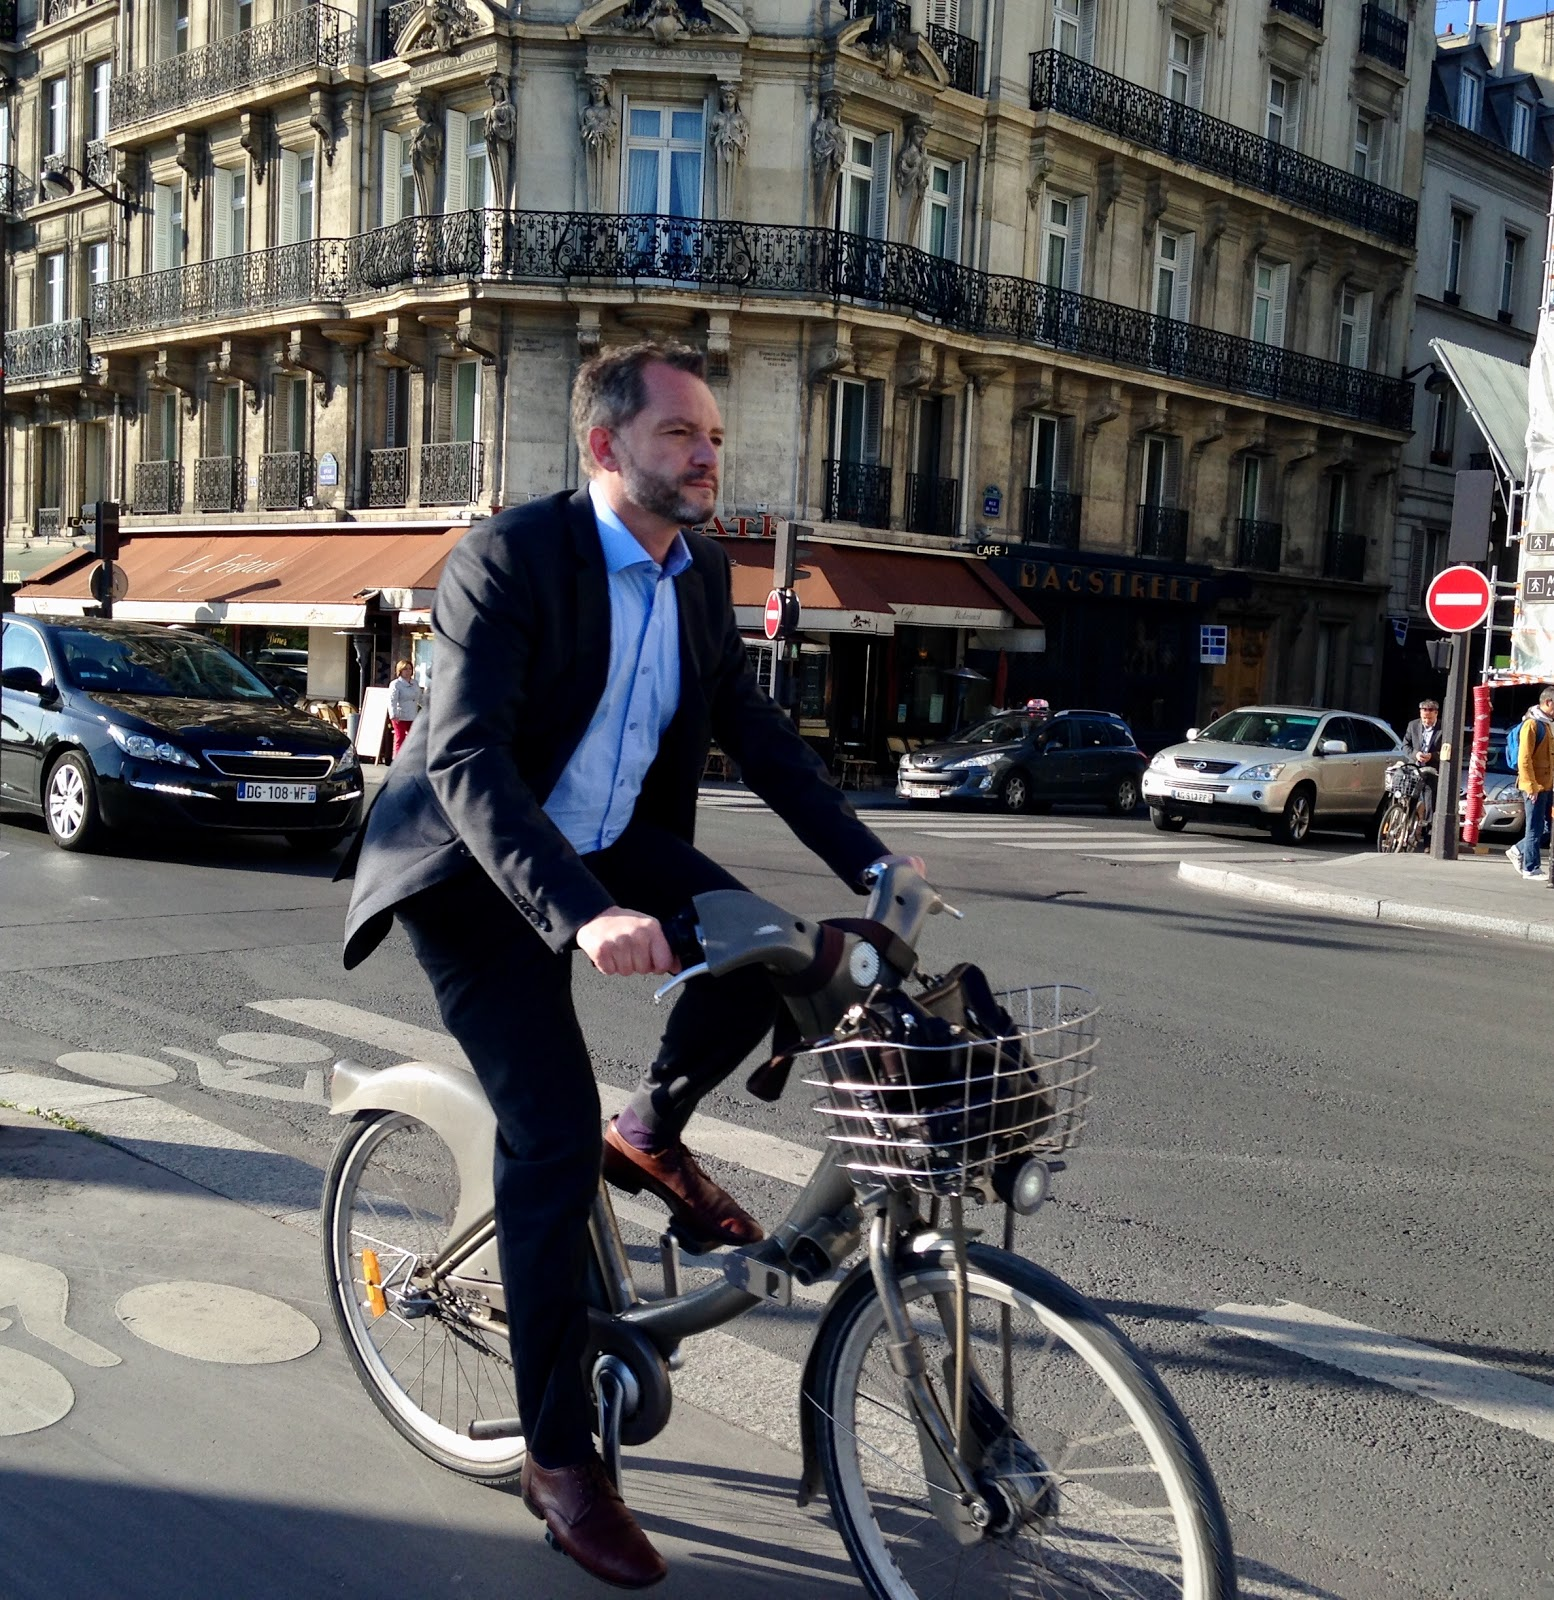 Cycing in Paris